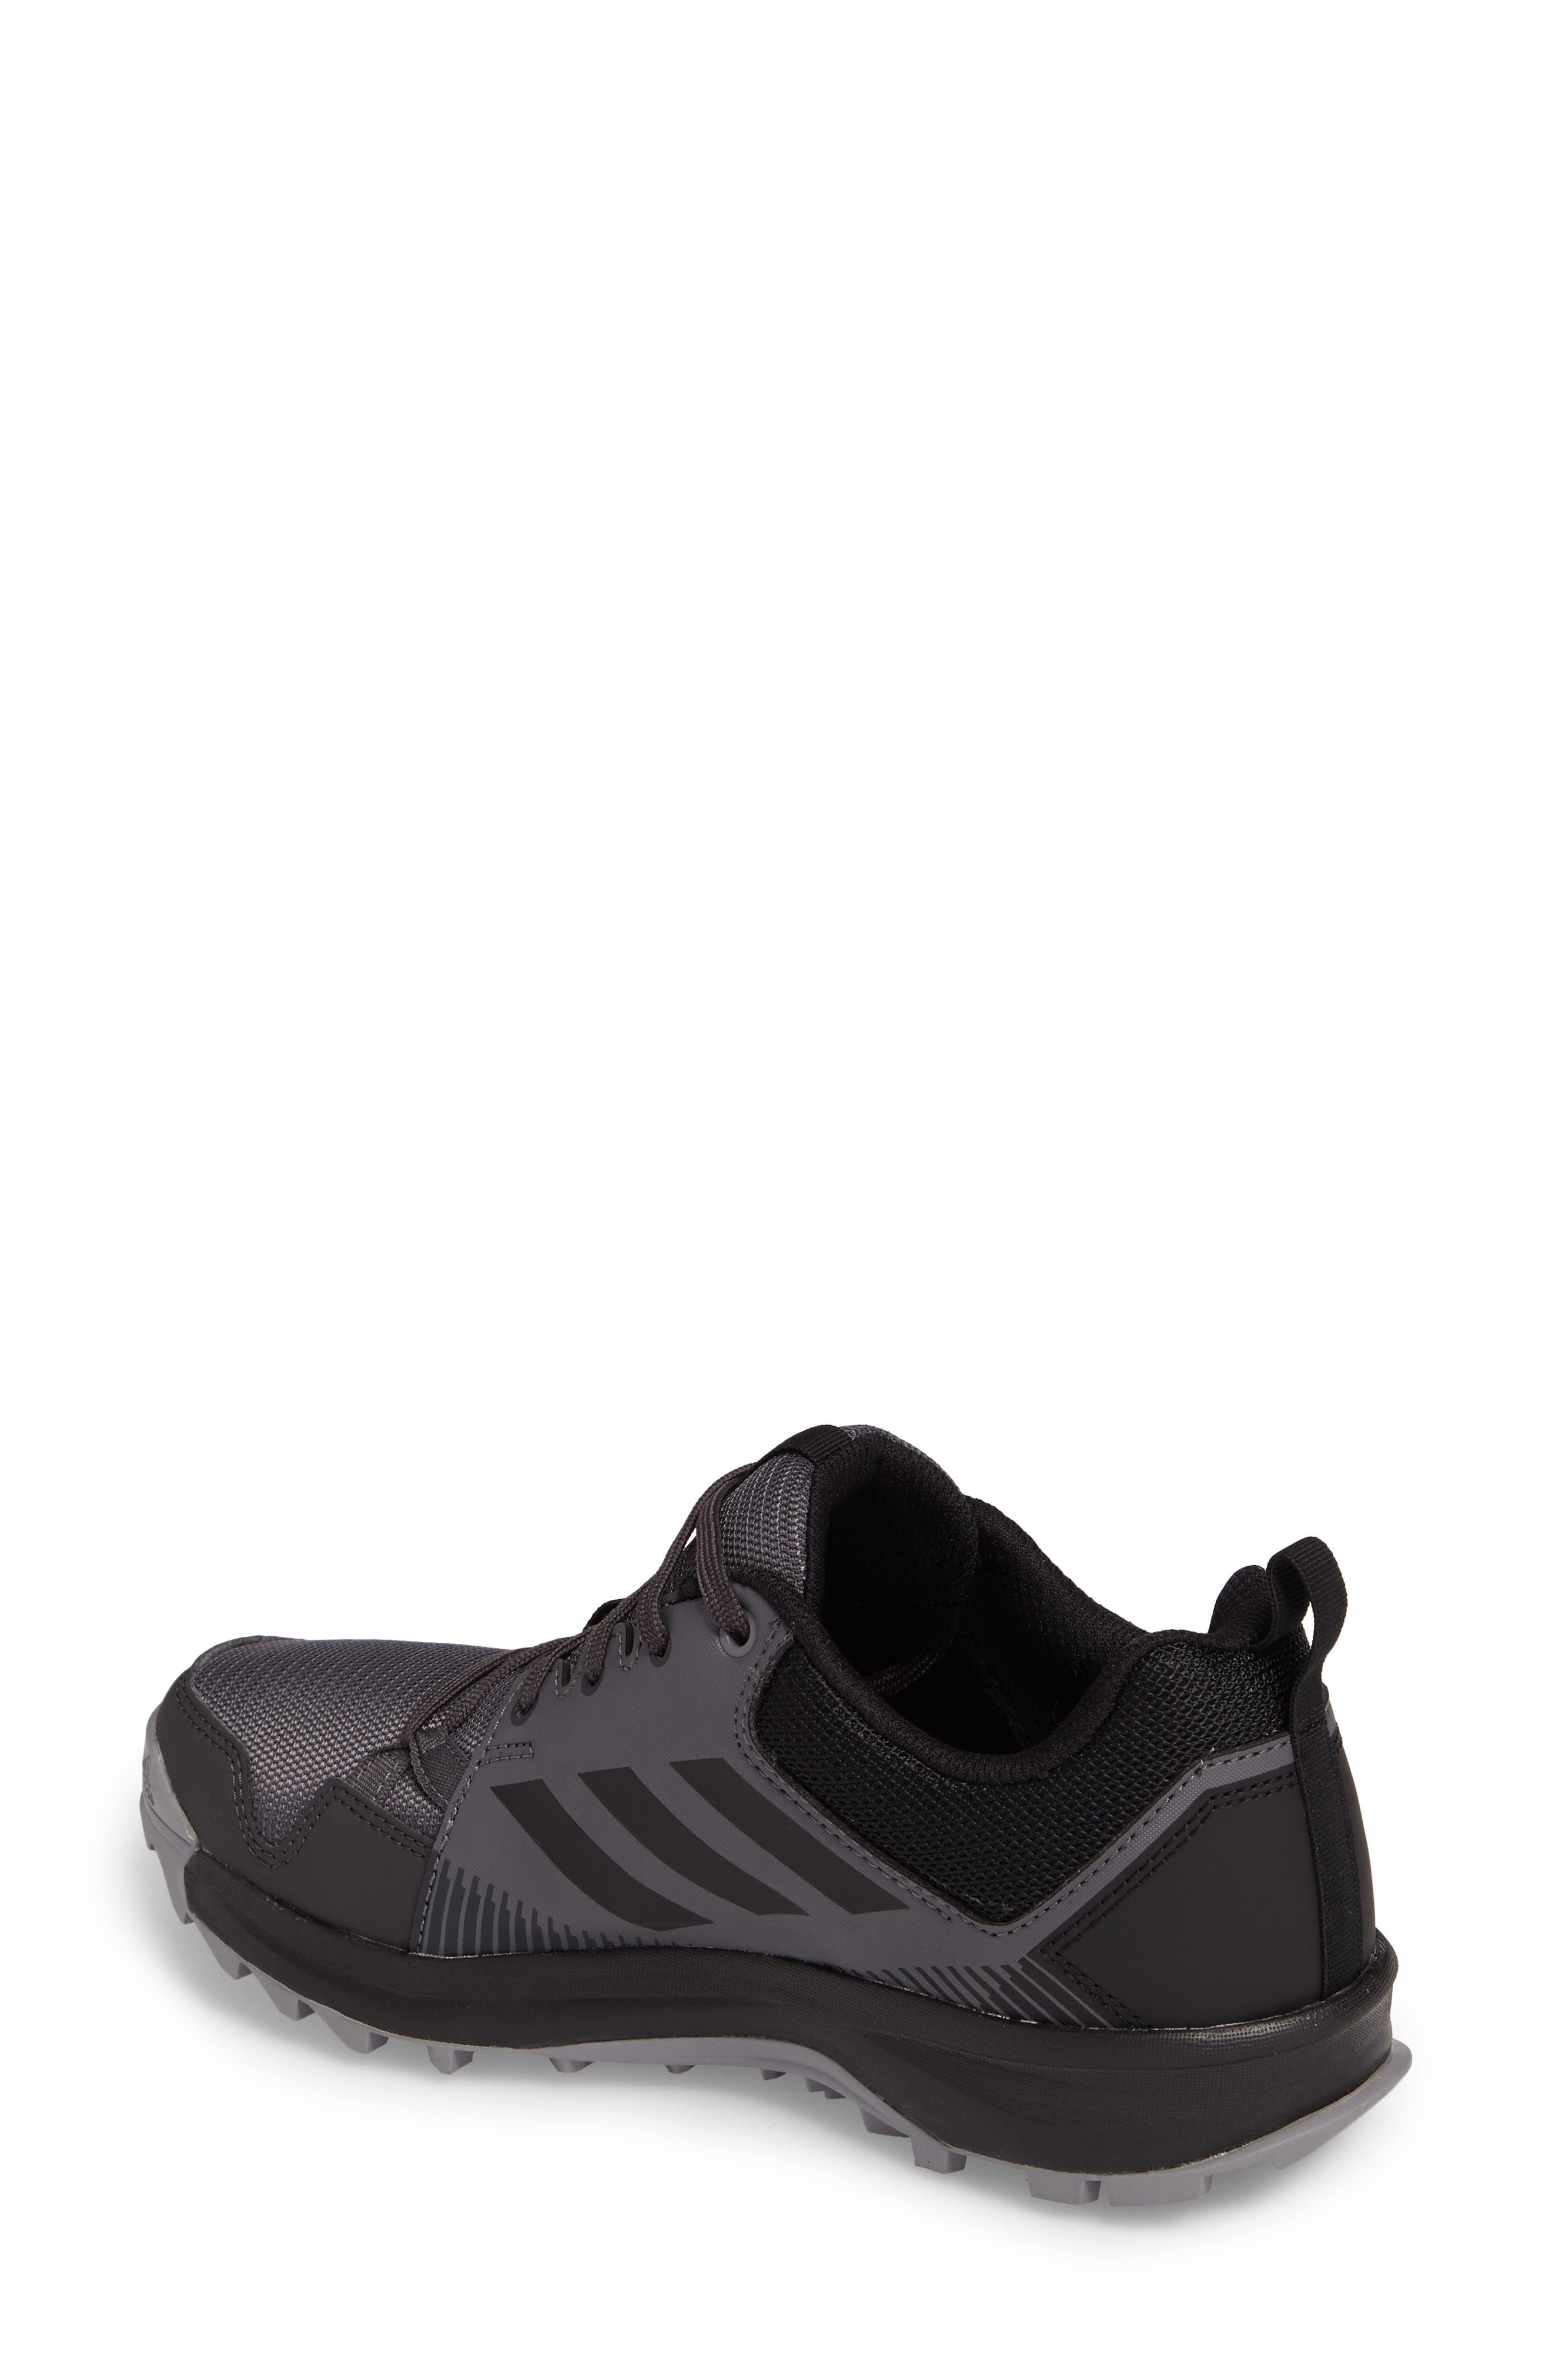 'Tracerocker' Athletic Shoe,                             Alternate thumbnail 2, color,                             002